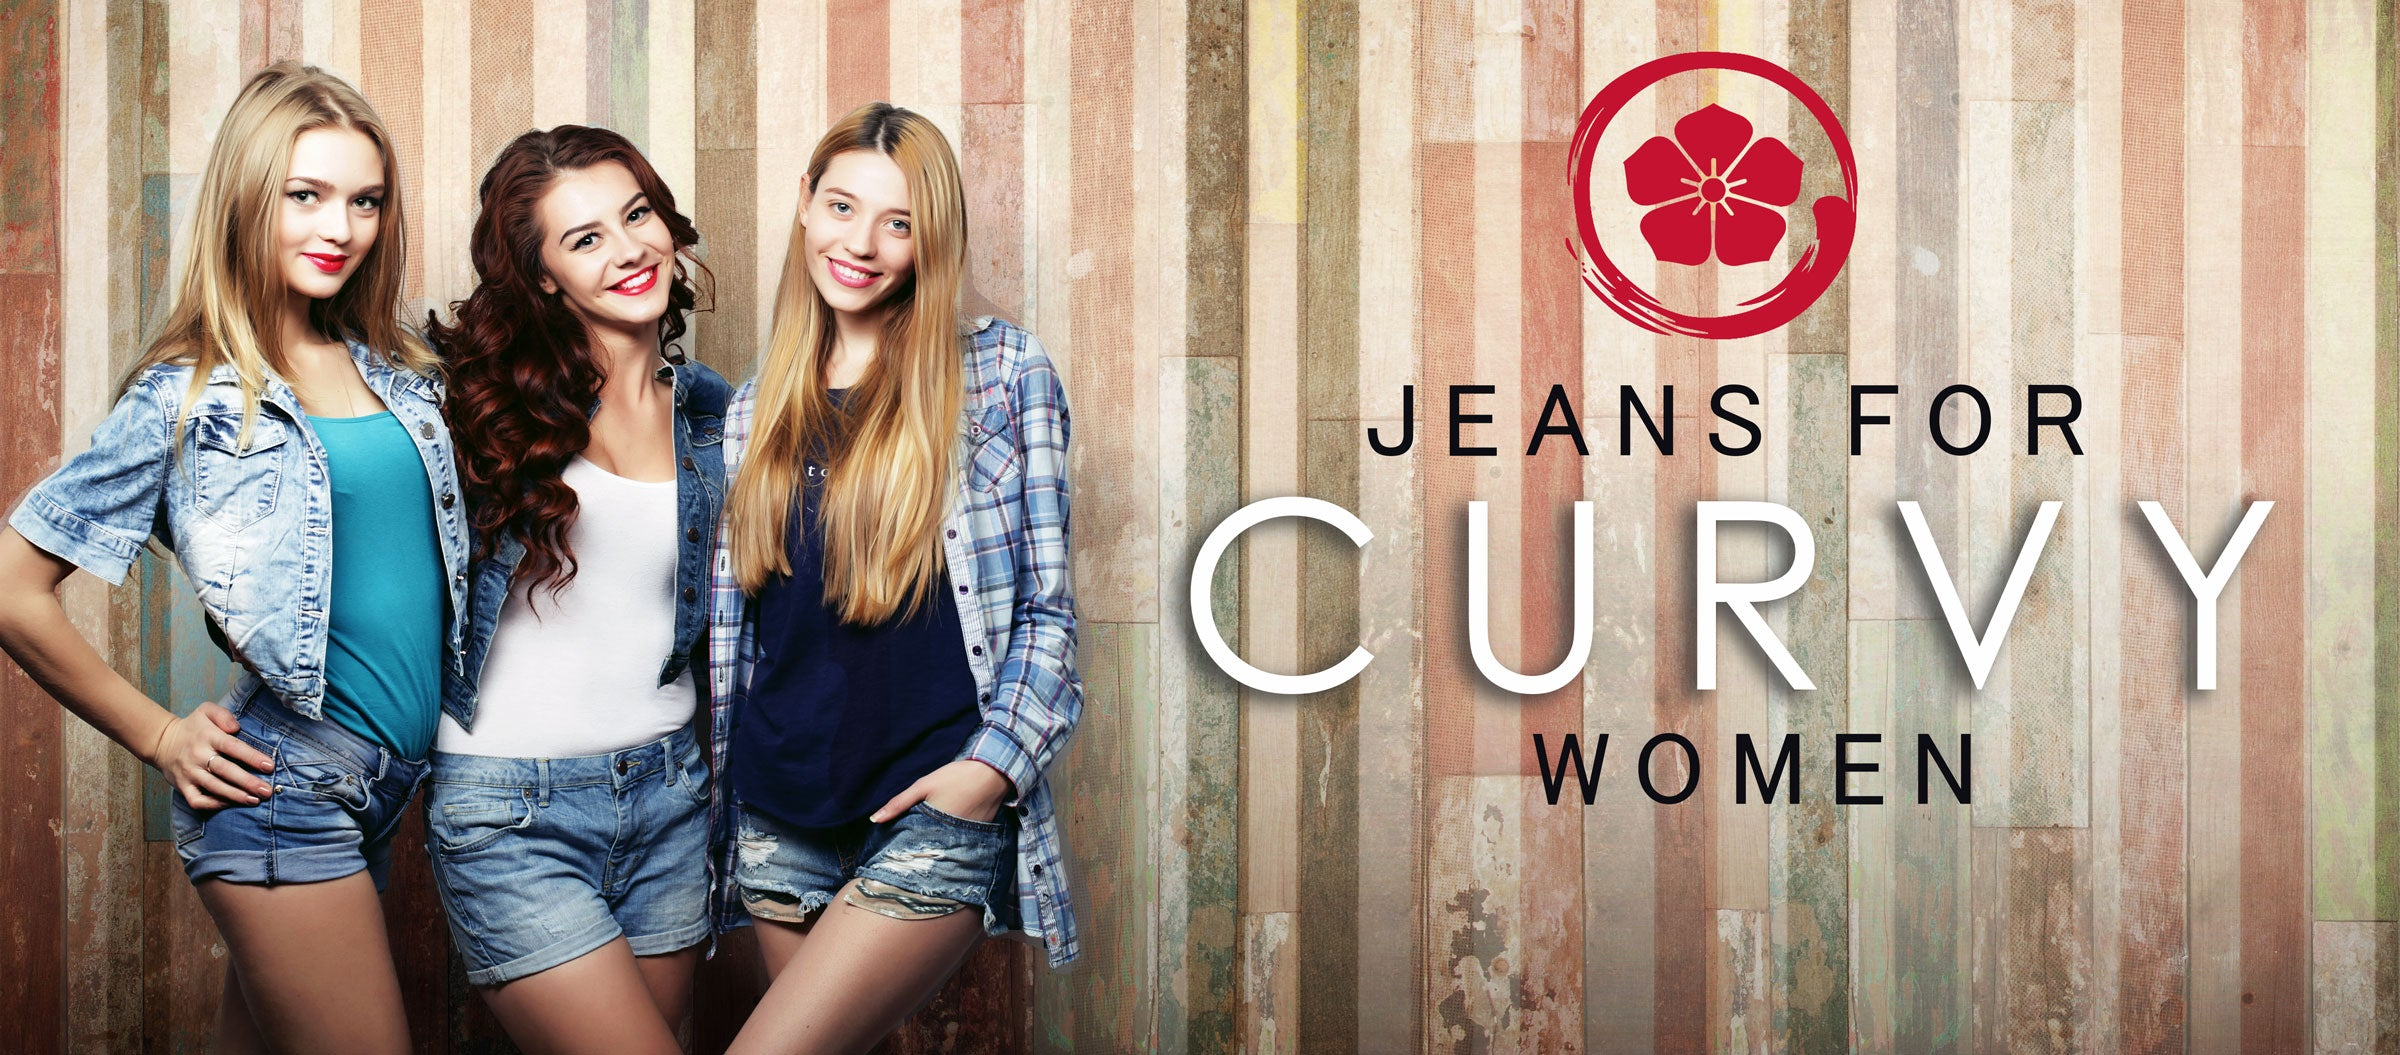 Hana Jeans - Jeans for Curvy Women